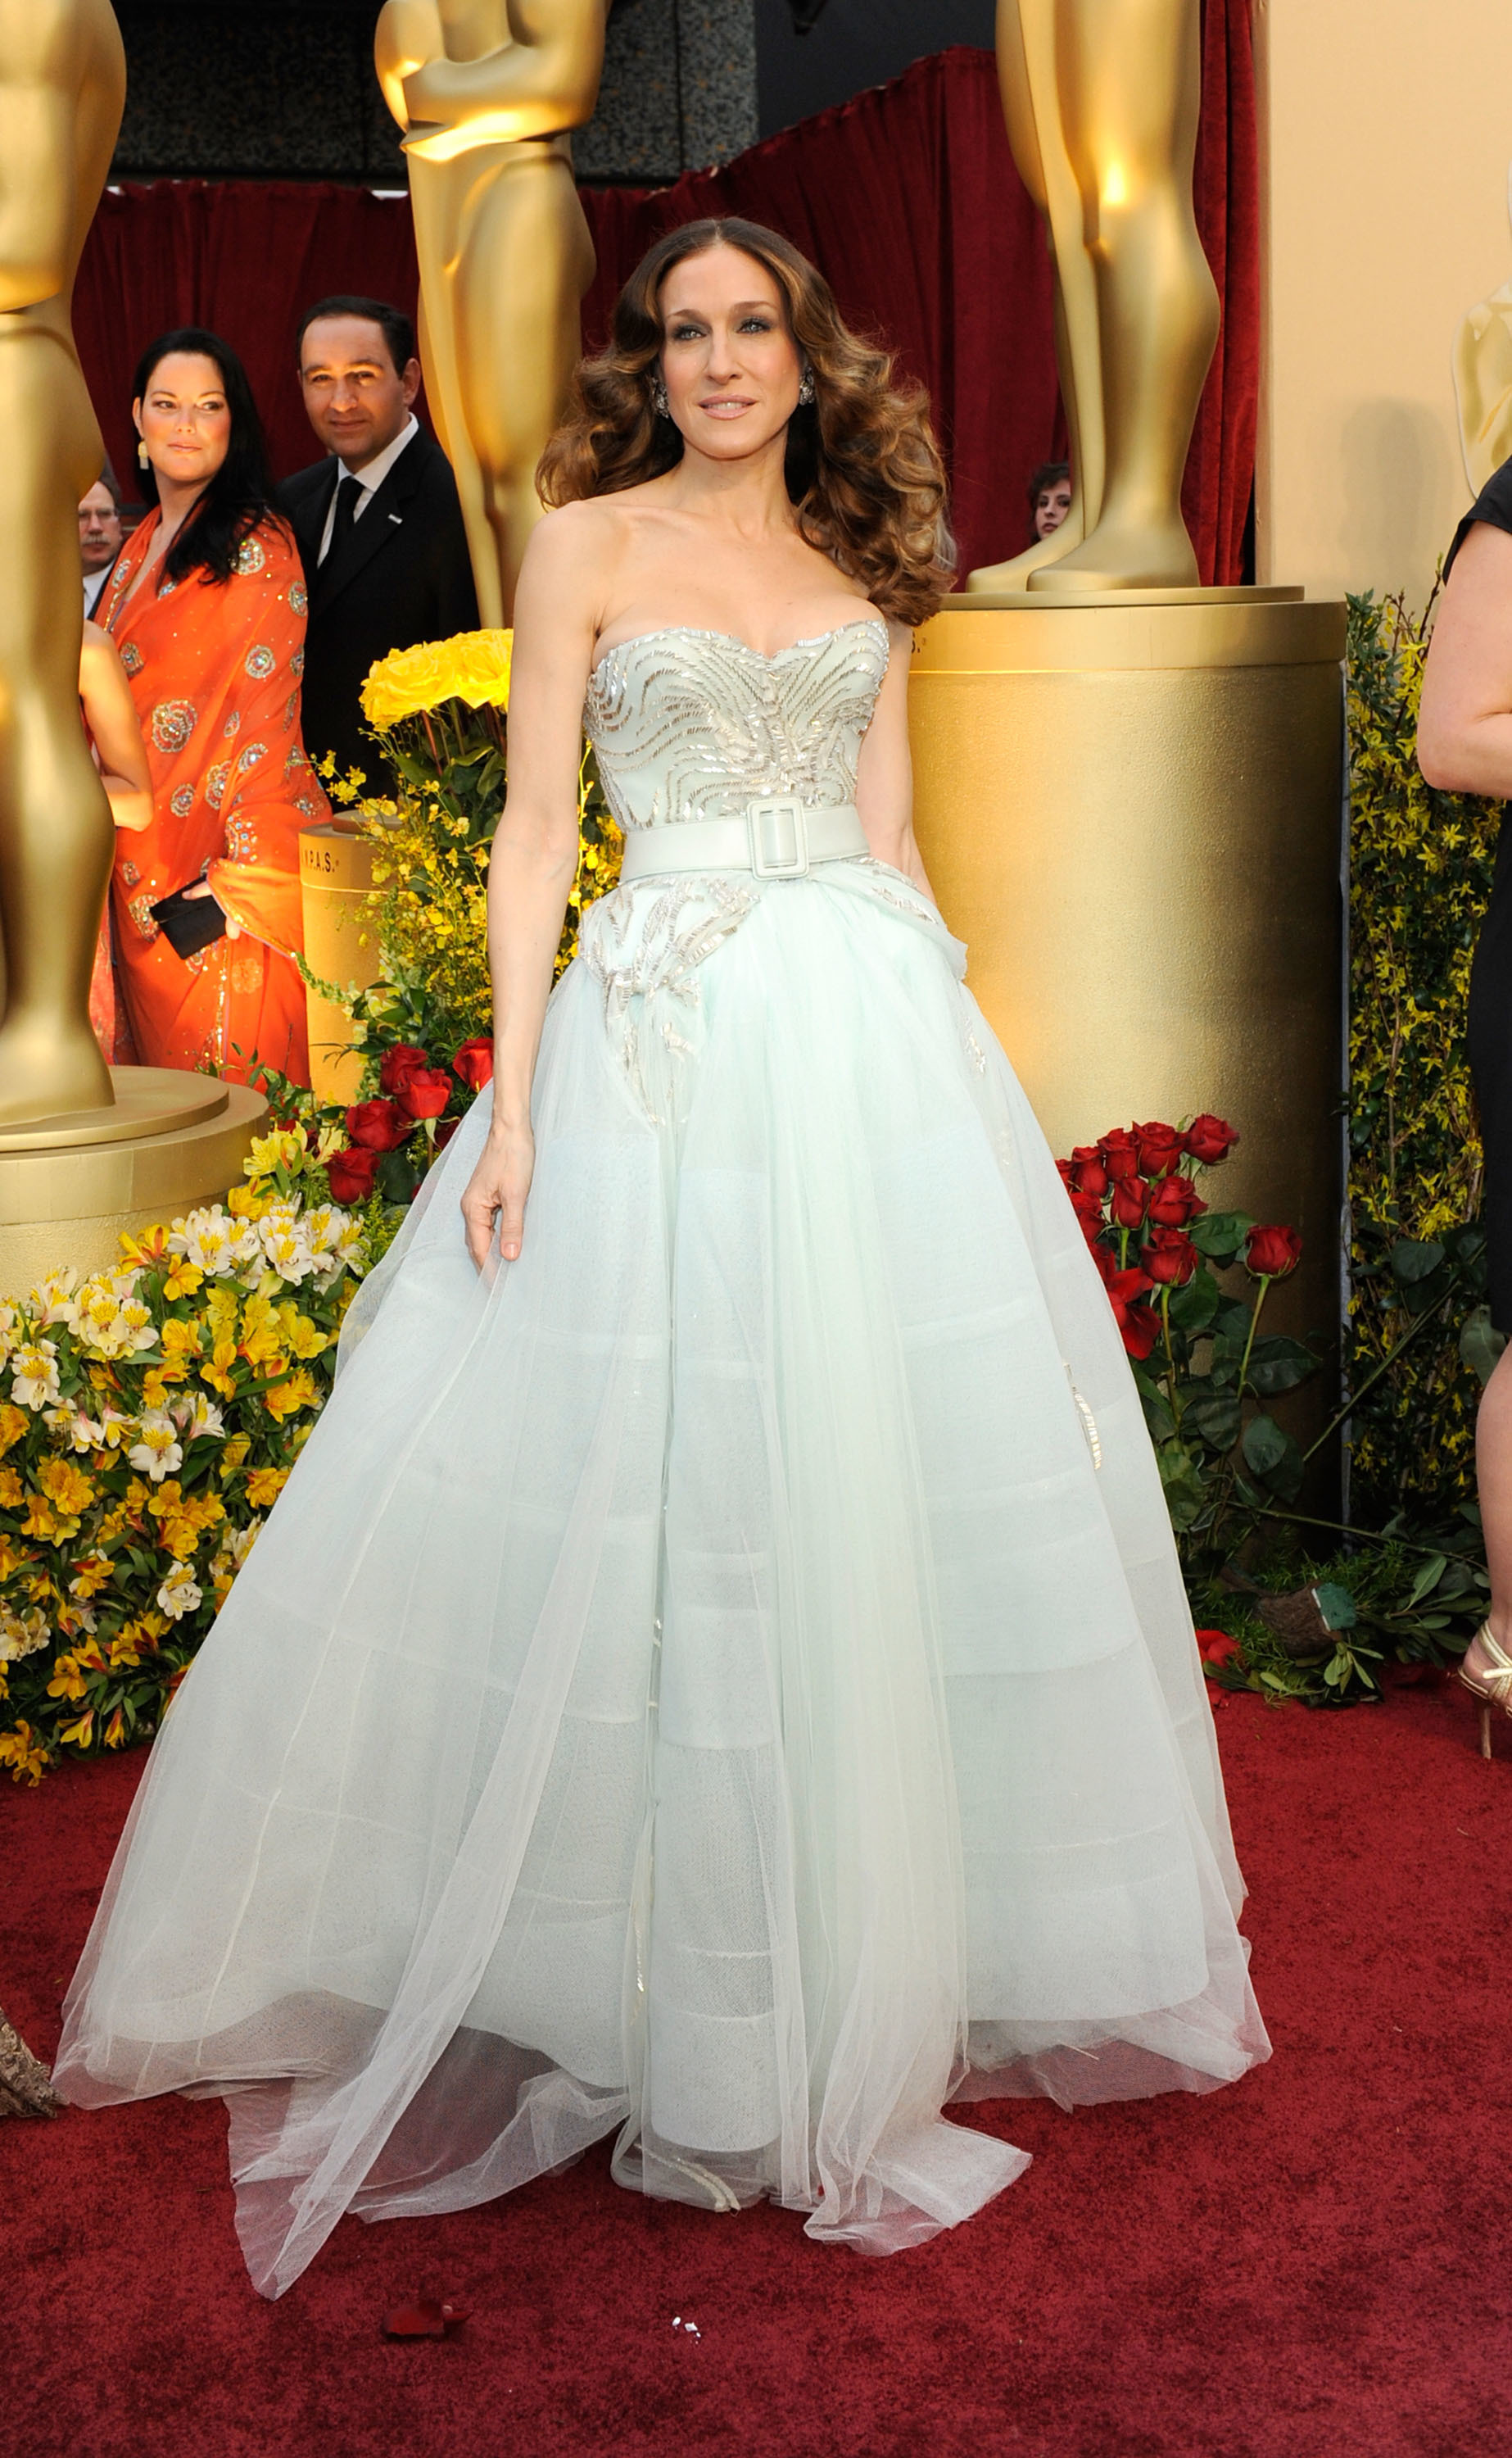 Sarah Jessica Parker arrives at the 81st Annual Academy Awards held at Kodak Theatre in Hollywood on on February 22, 2009.